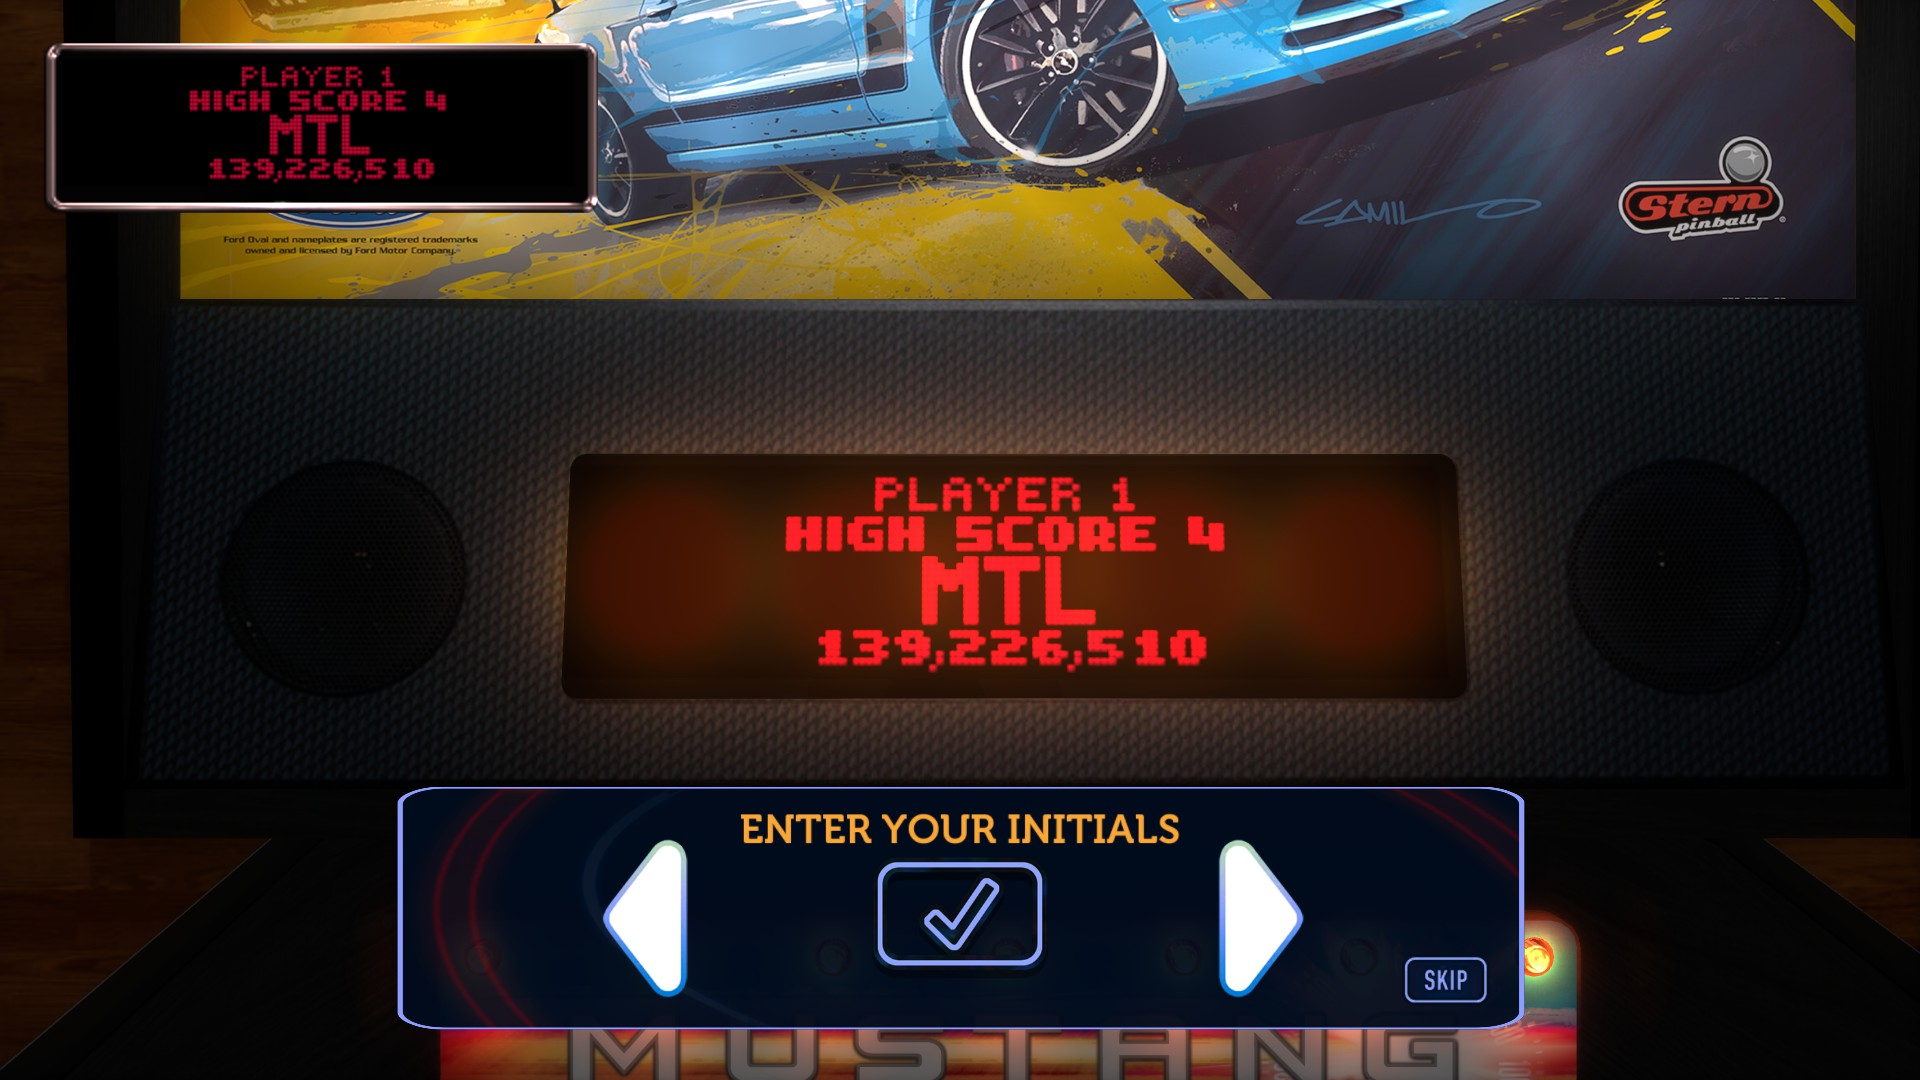 Mantalow: Stern Pinball Arcade: Mustang (PC) 139,226,510 points on 2017-01-02 11:22:08